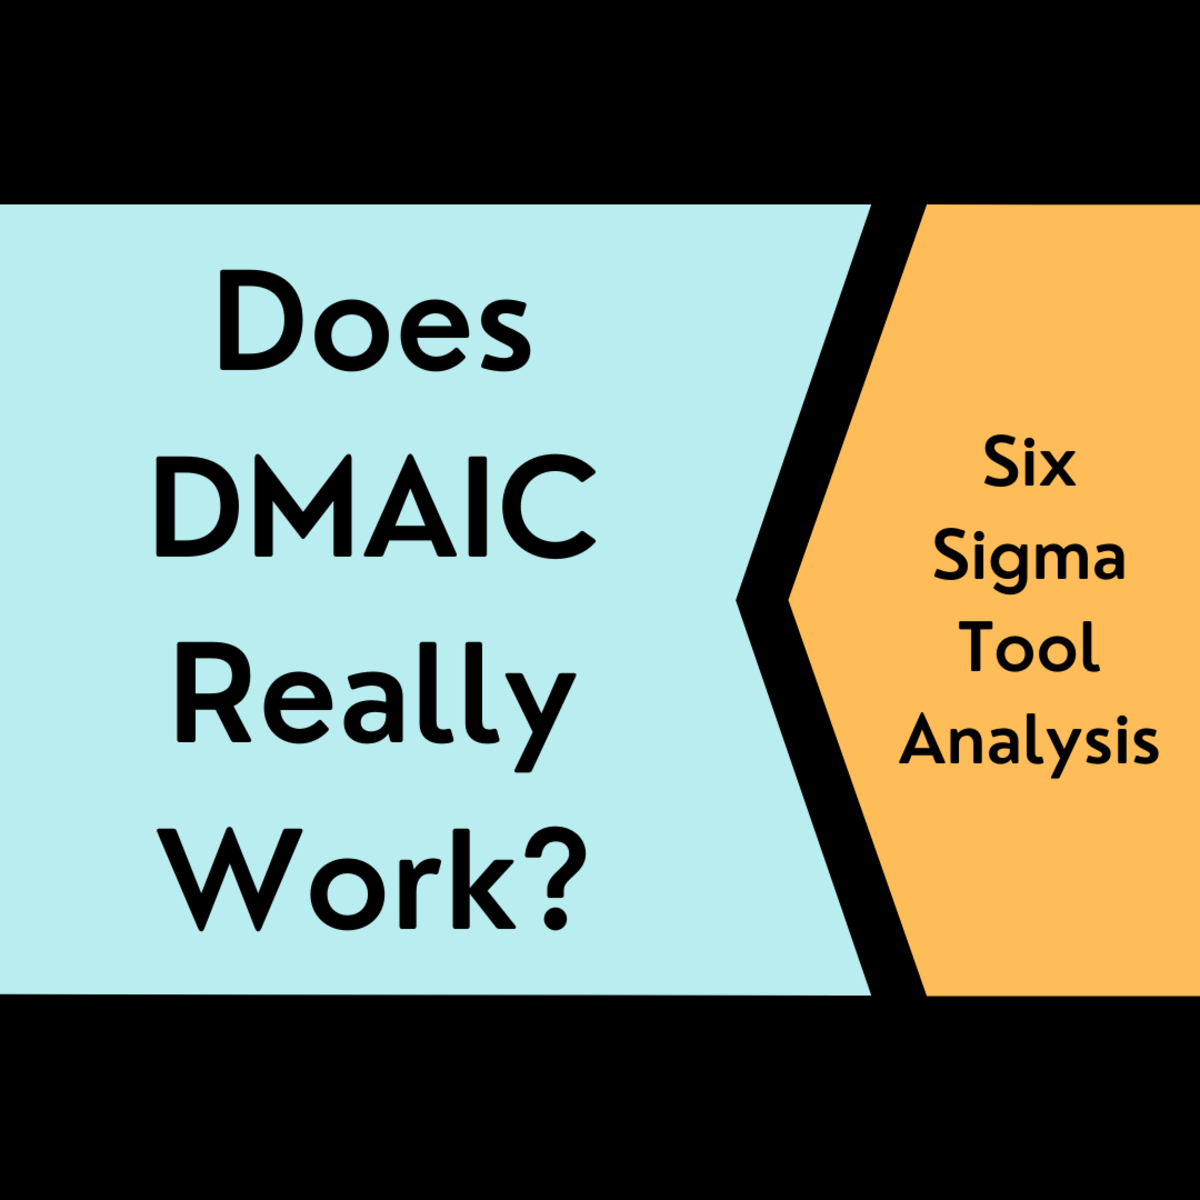 Learn more about the DMAIC tool in Six Sigma, how it works, and how effective it is.